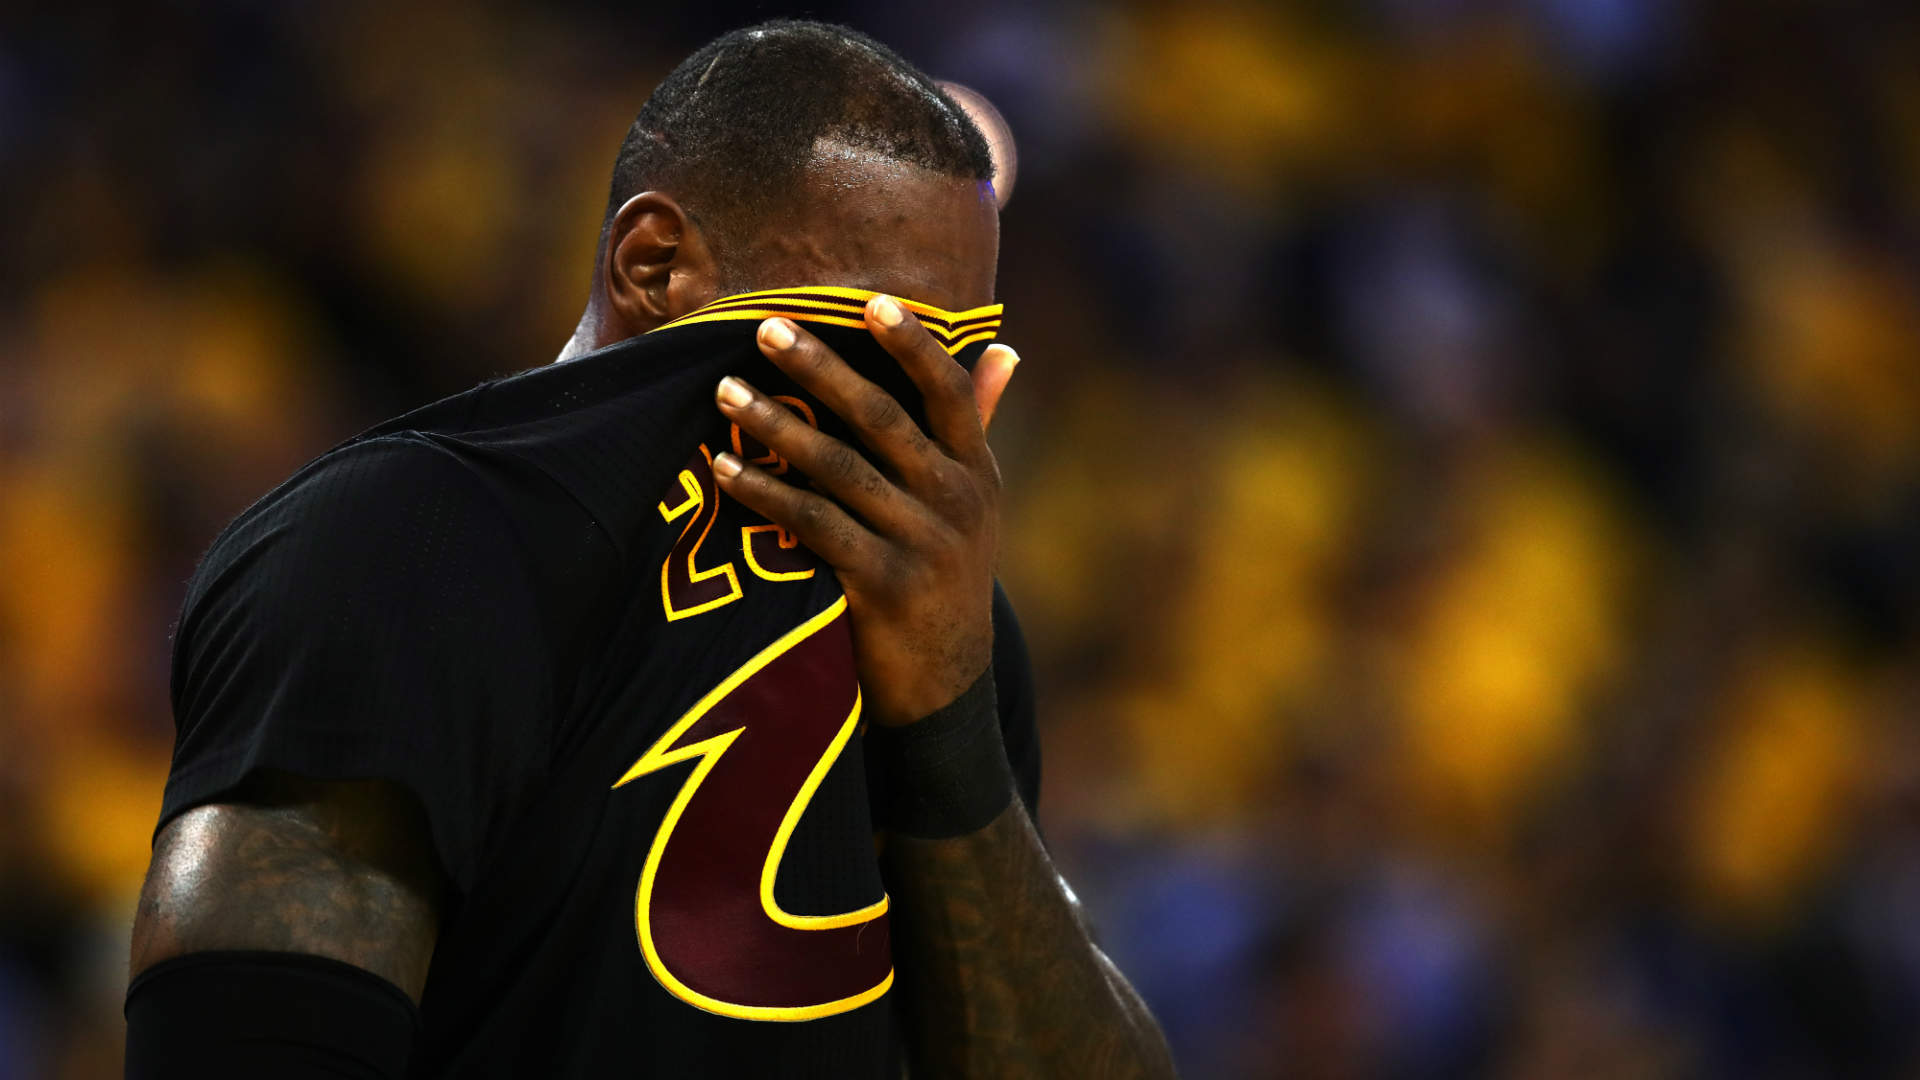 NBA Finals 2017: LeBron James claims he's not getting tired, but stats disprove him | NBA ...